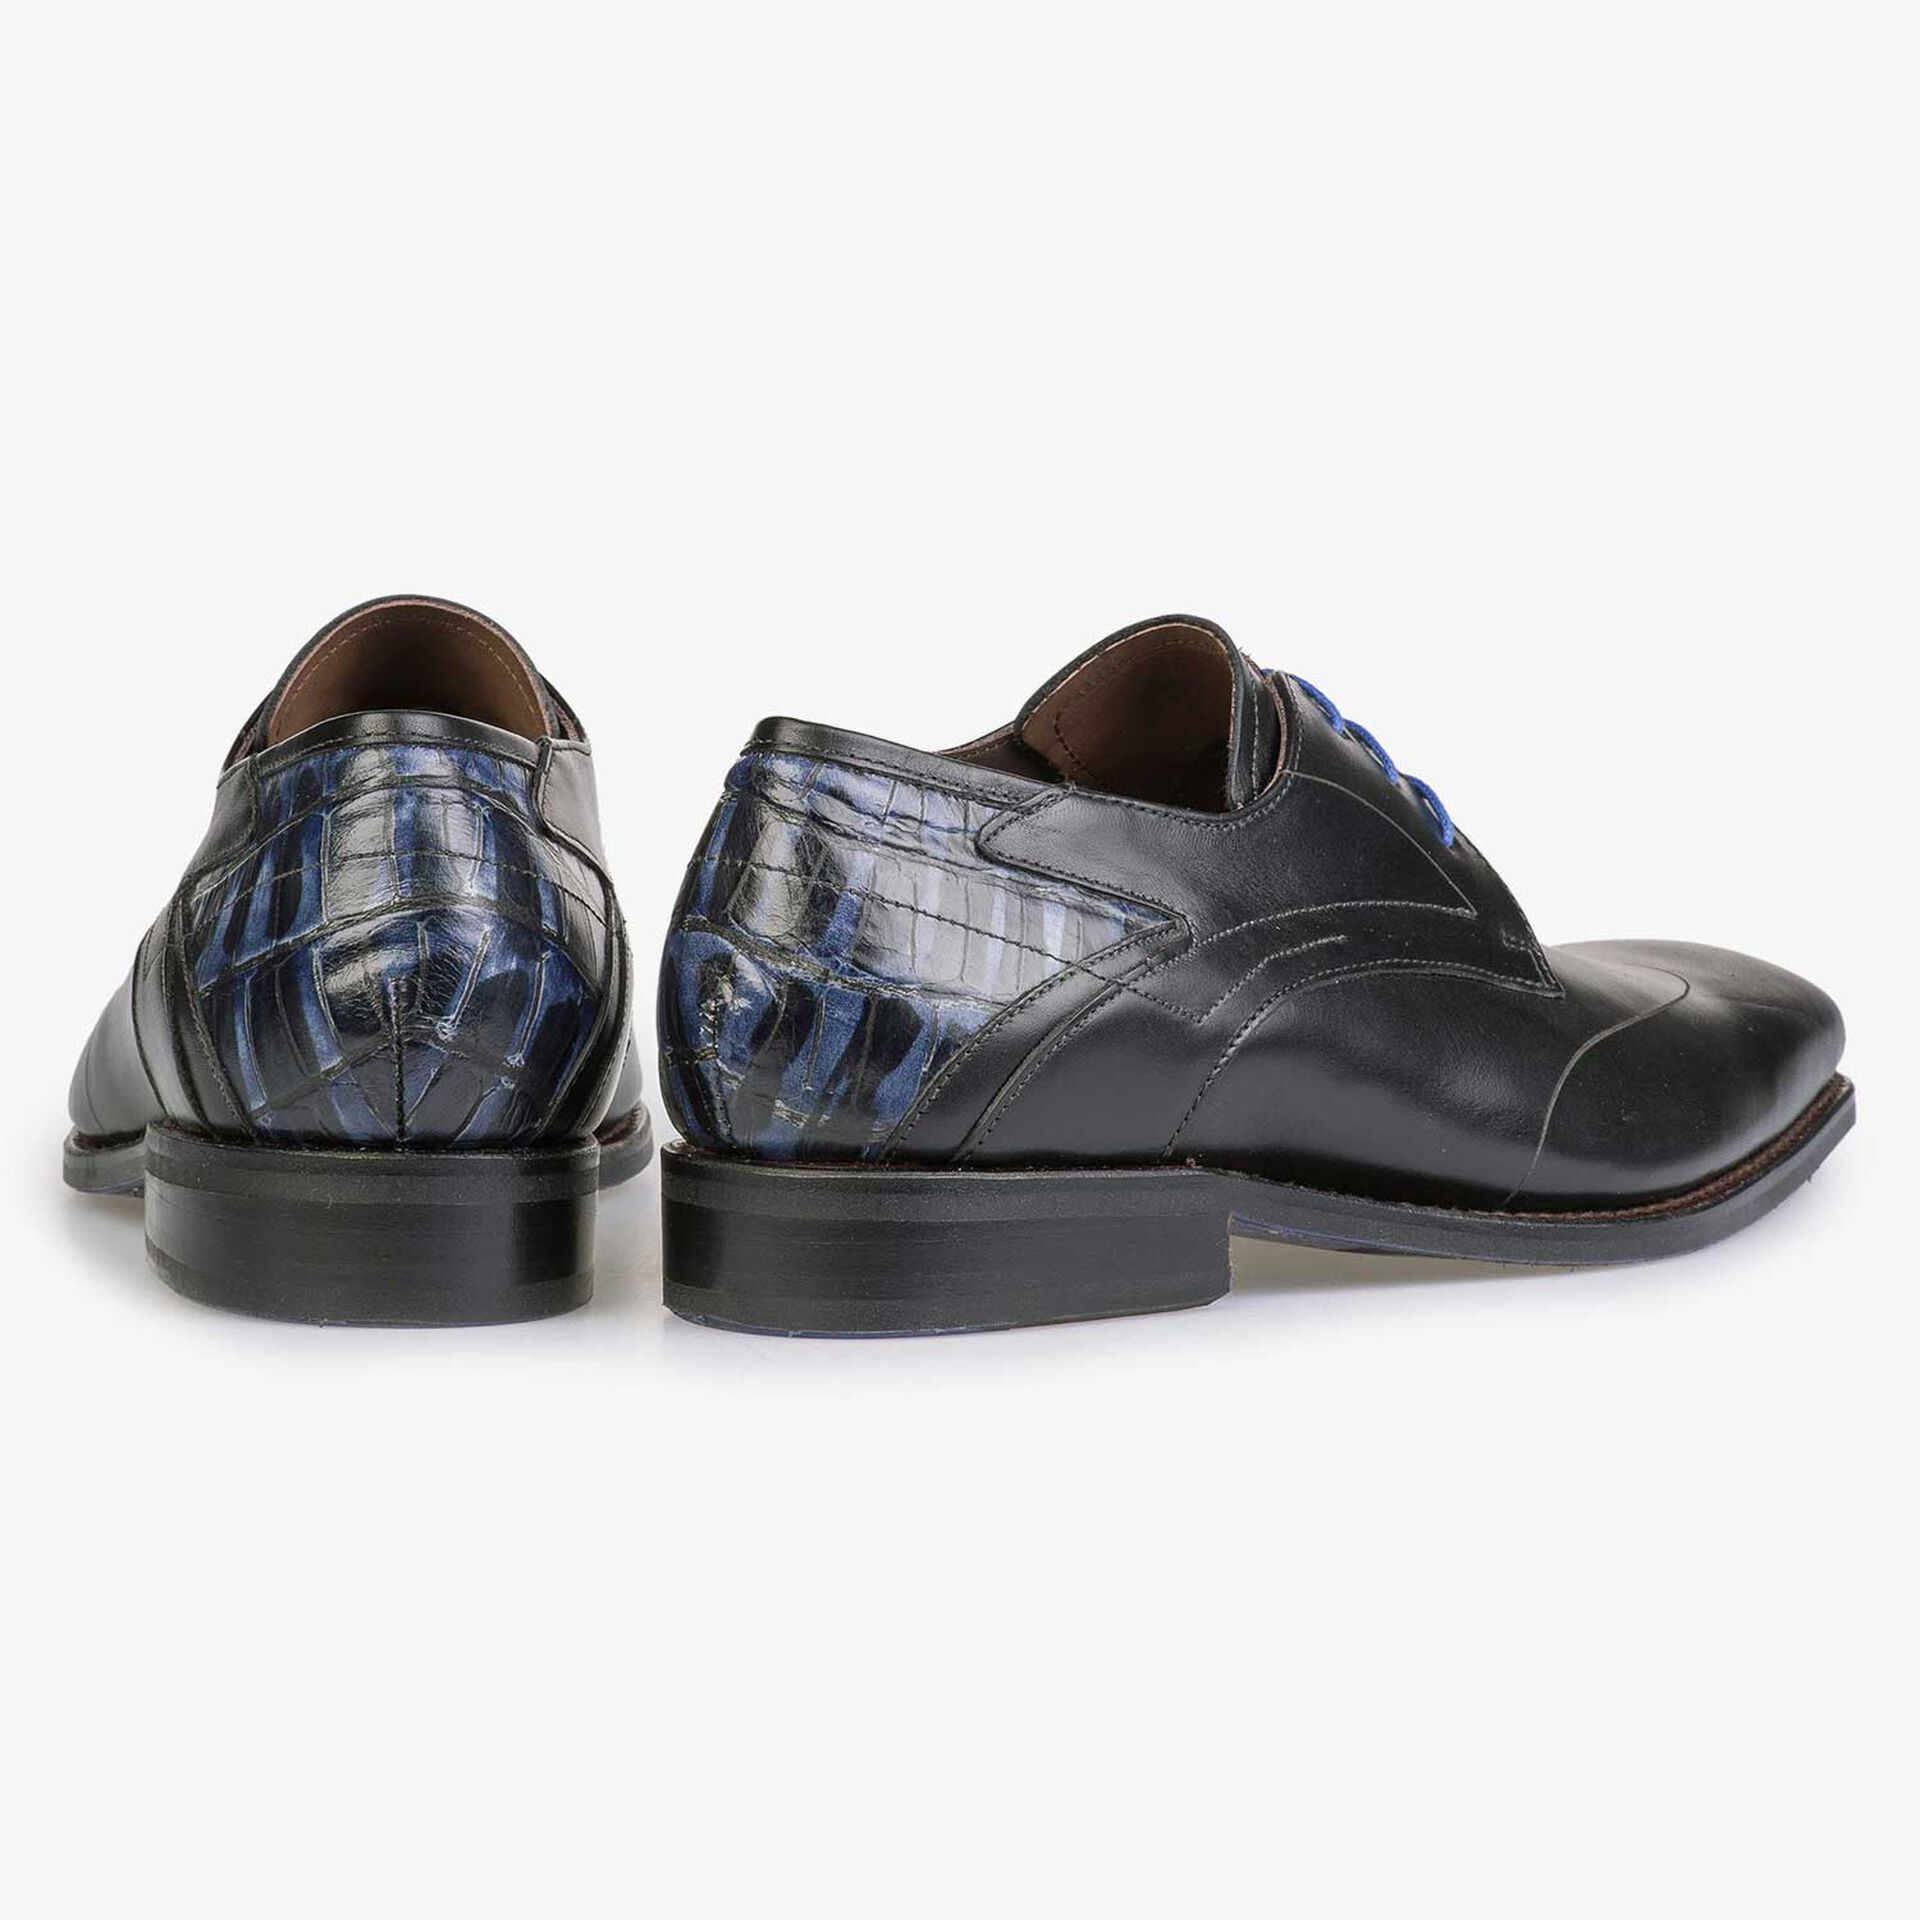 Black calf's leather lace shoe with croco print